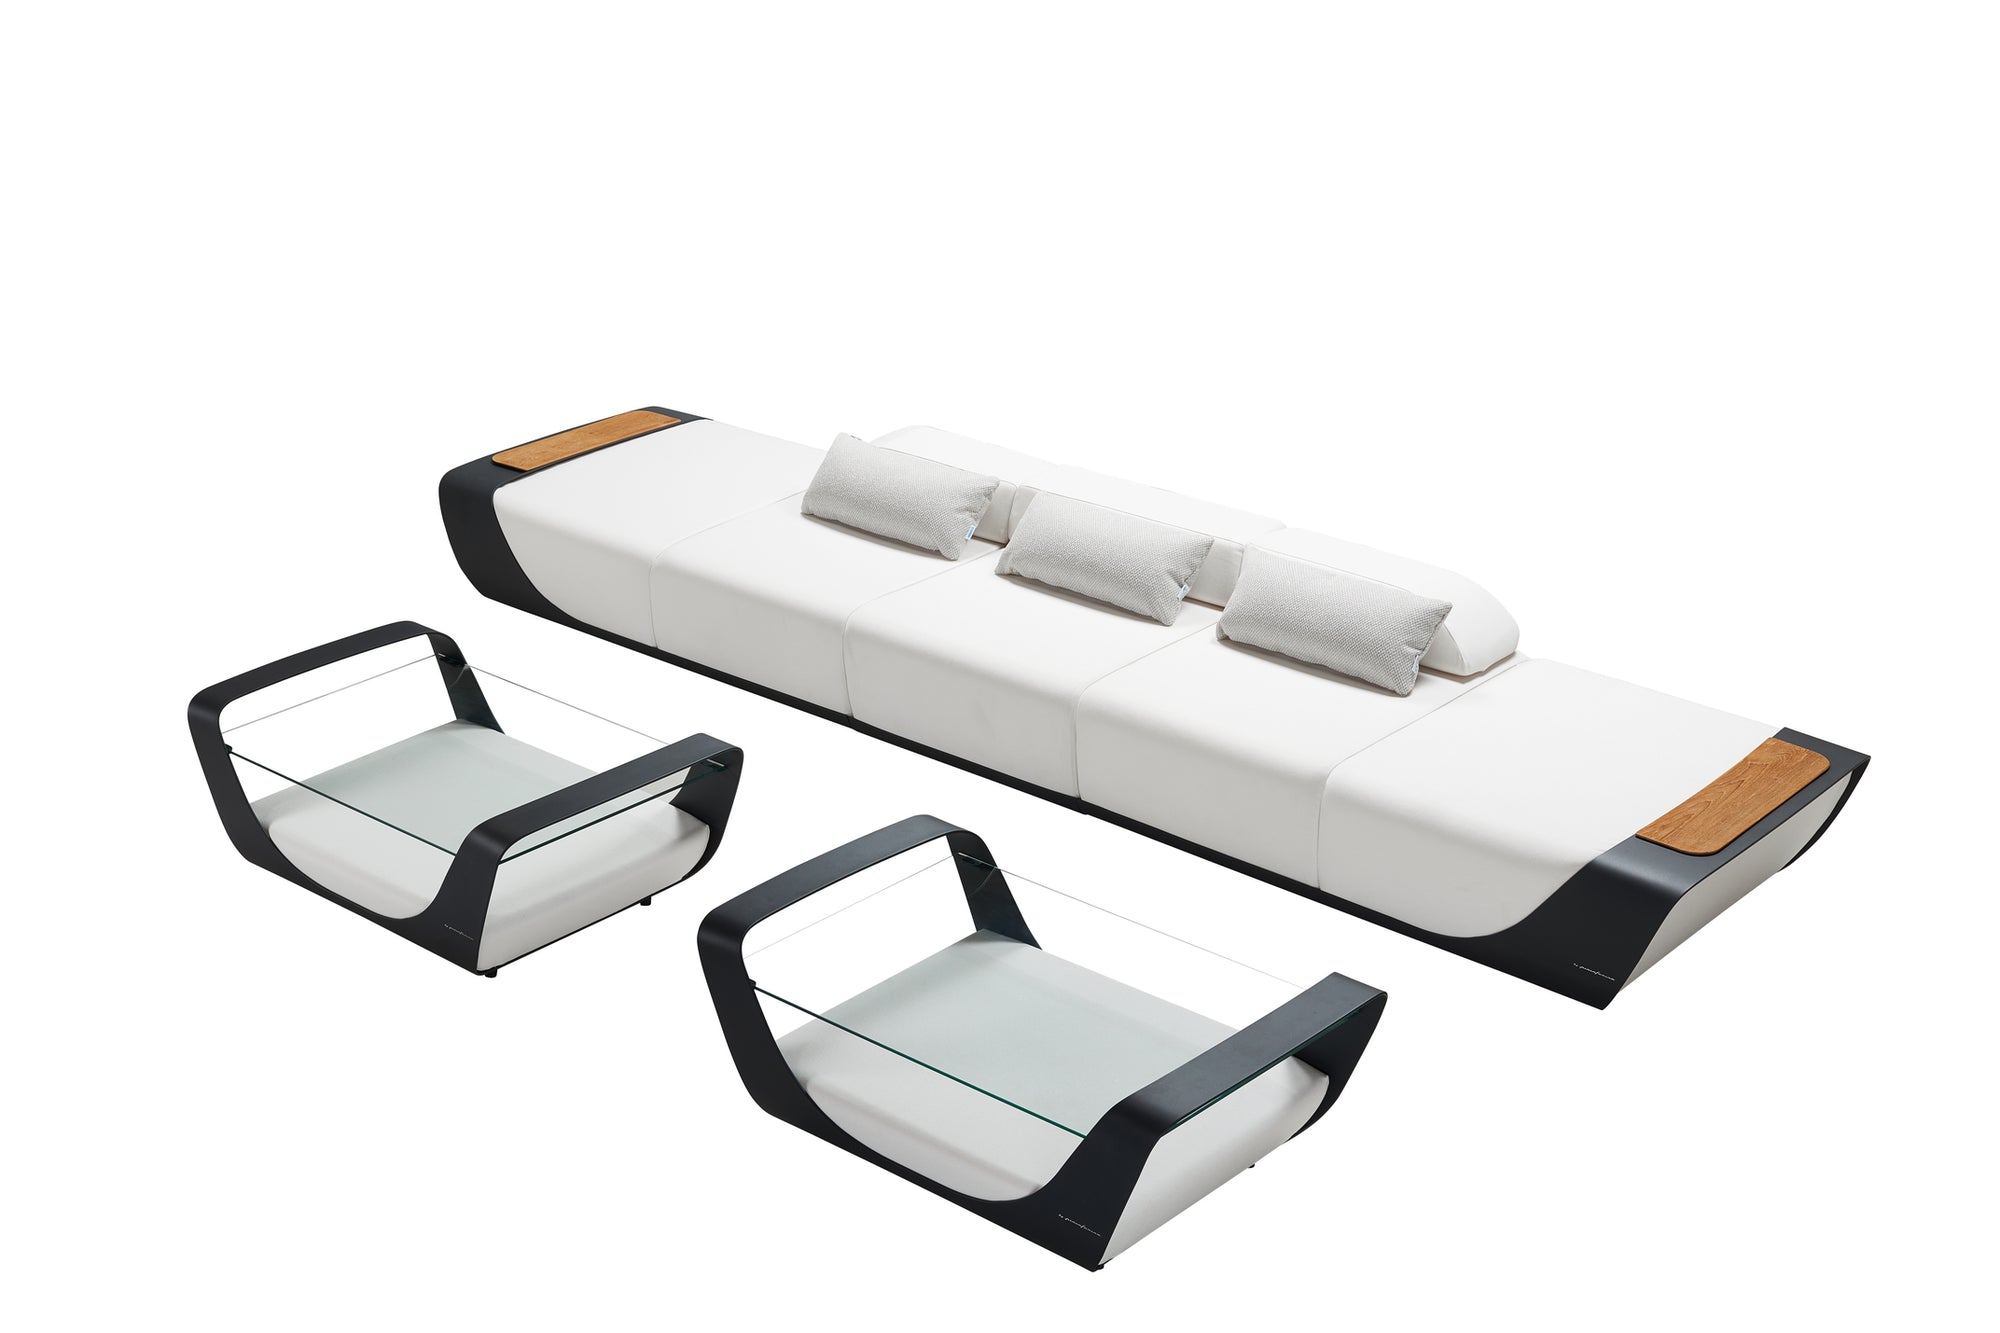 Single Sofa Outdoor Lounge Set | Higold Pininfarina | OROA Furniture